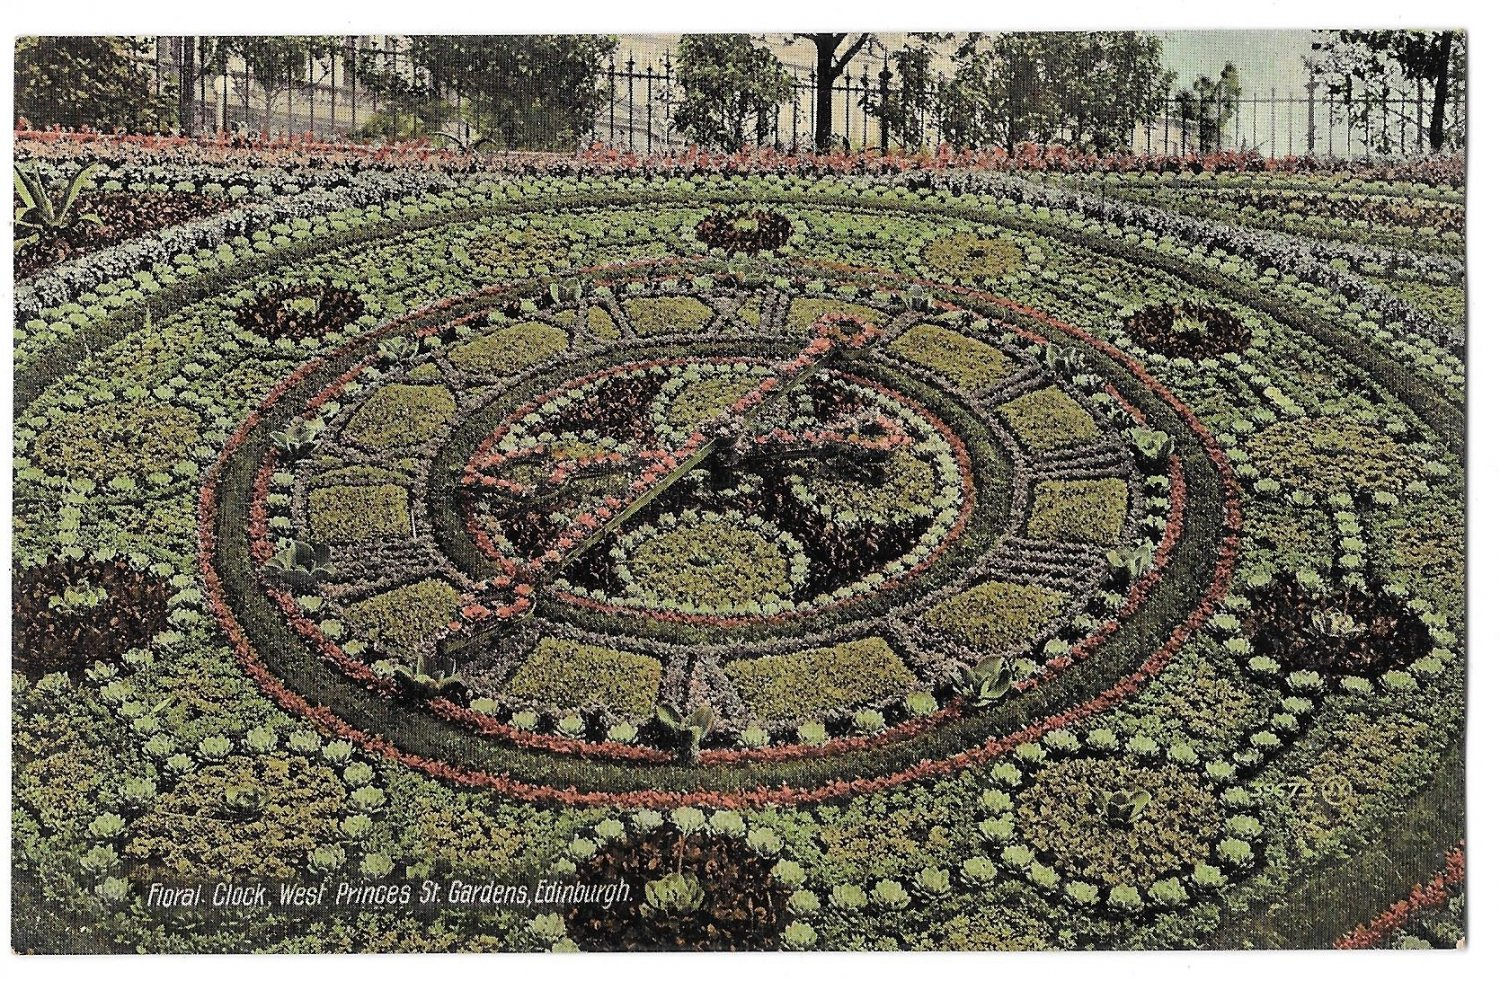 Edinburgh Scotland Floral Clock West Princes St Gardens Vntg Valentines Postcard